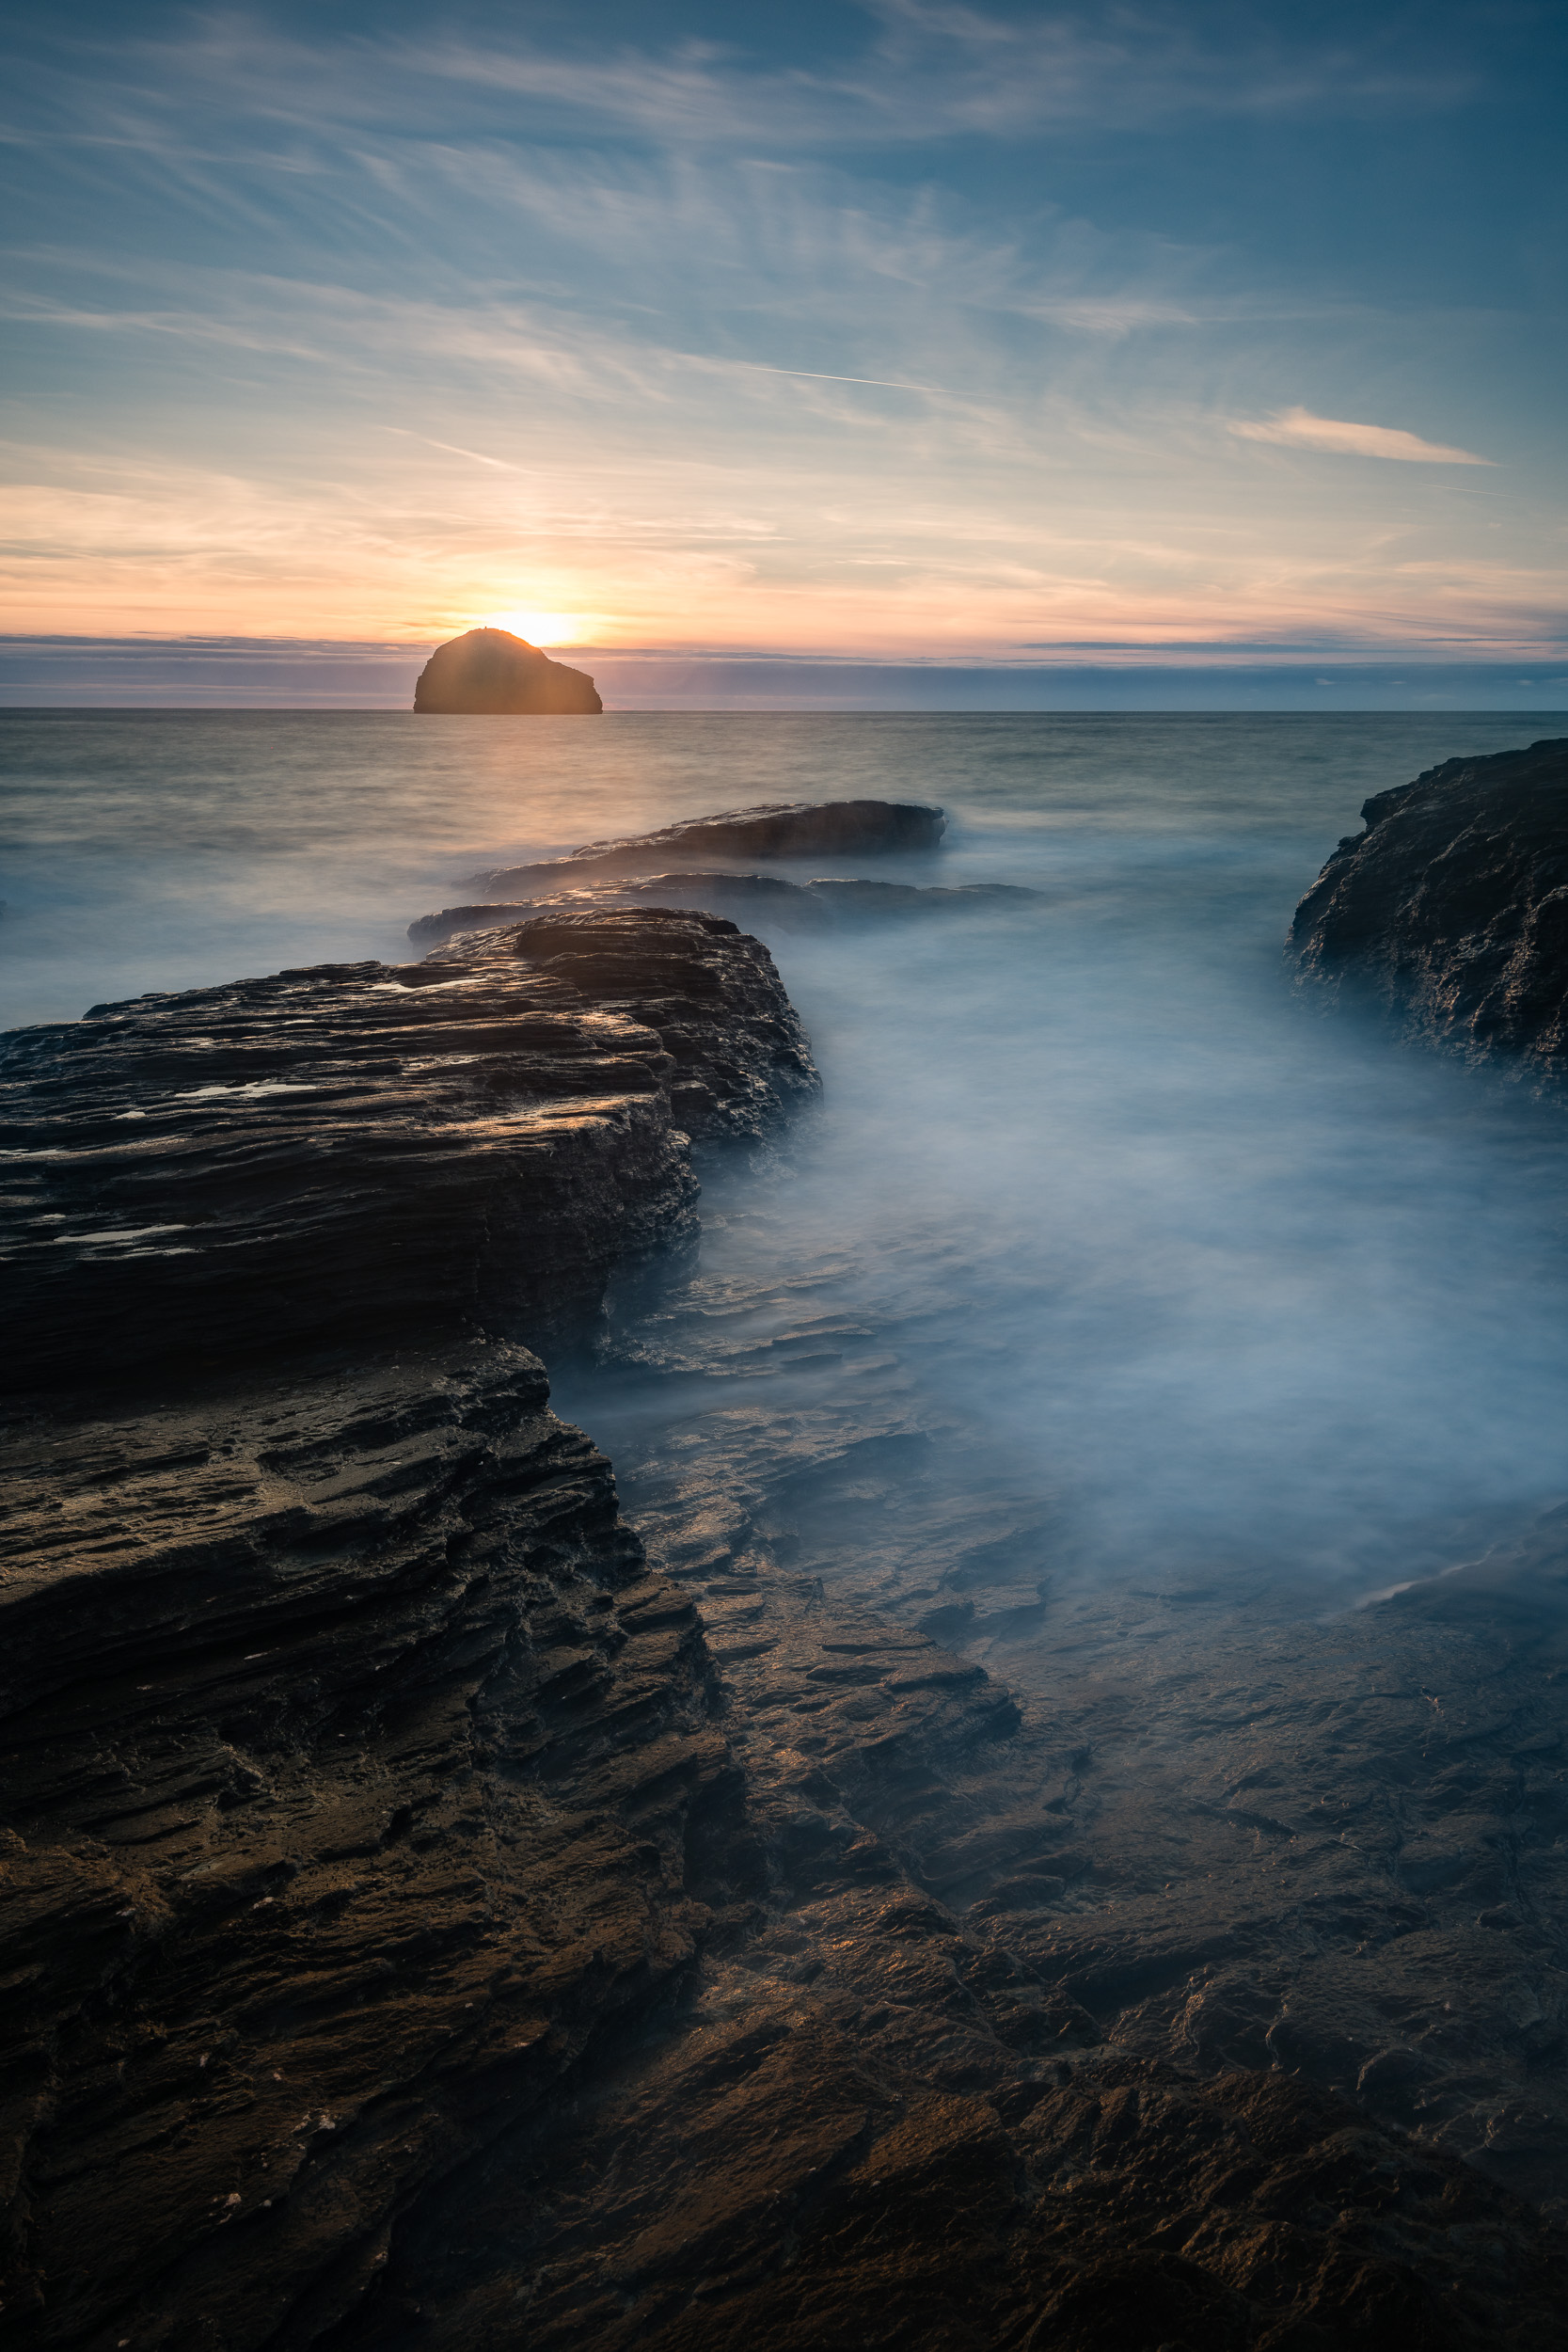 Nikon D850, Nikkor 16-35mm f/4 @ 26mm, f/13, ISO 64, 20 seconds, Lee Filters Big Stopper and ND Grad.